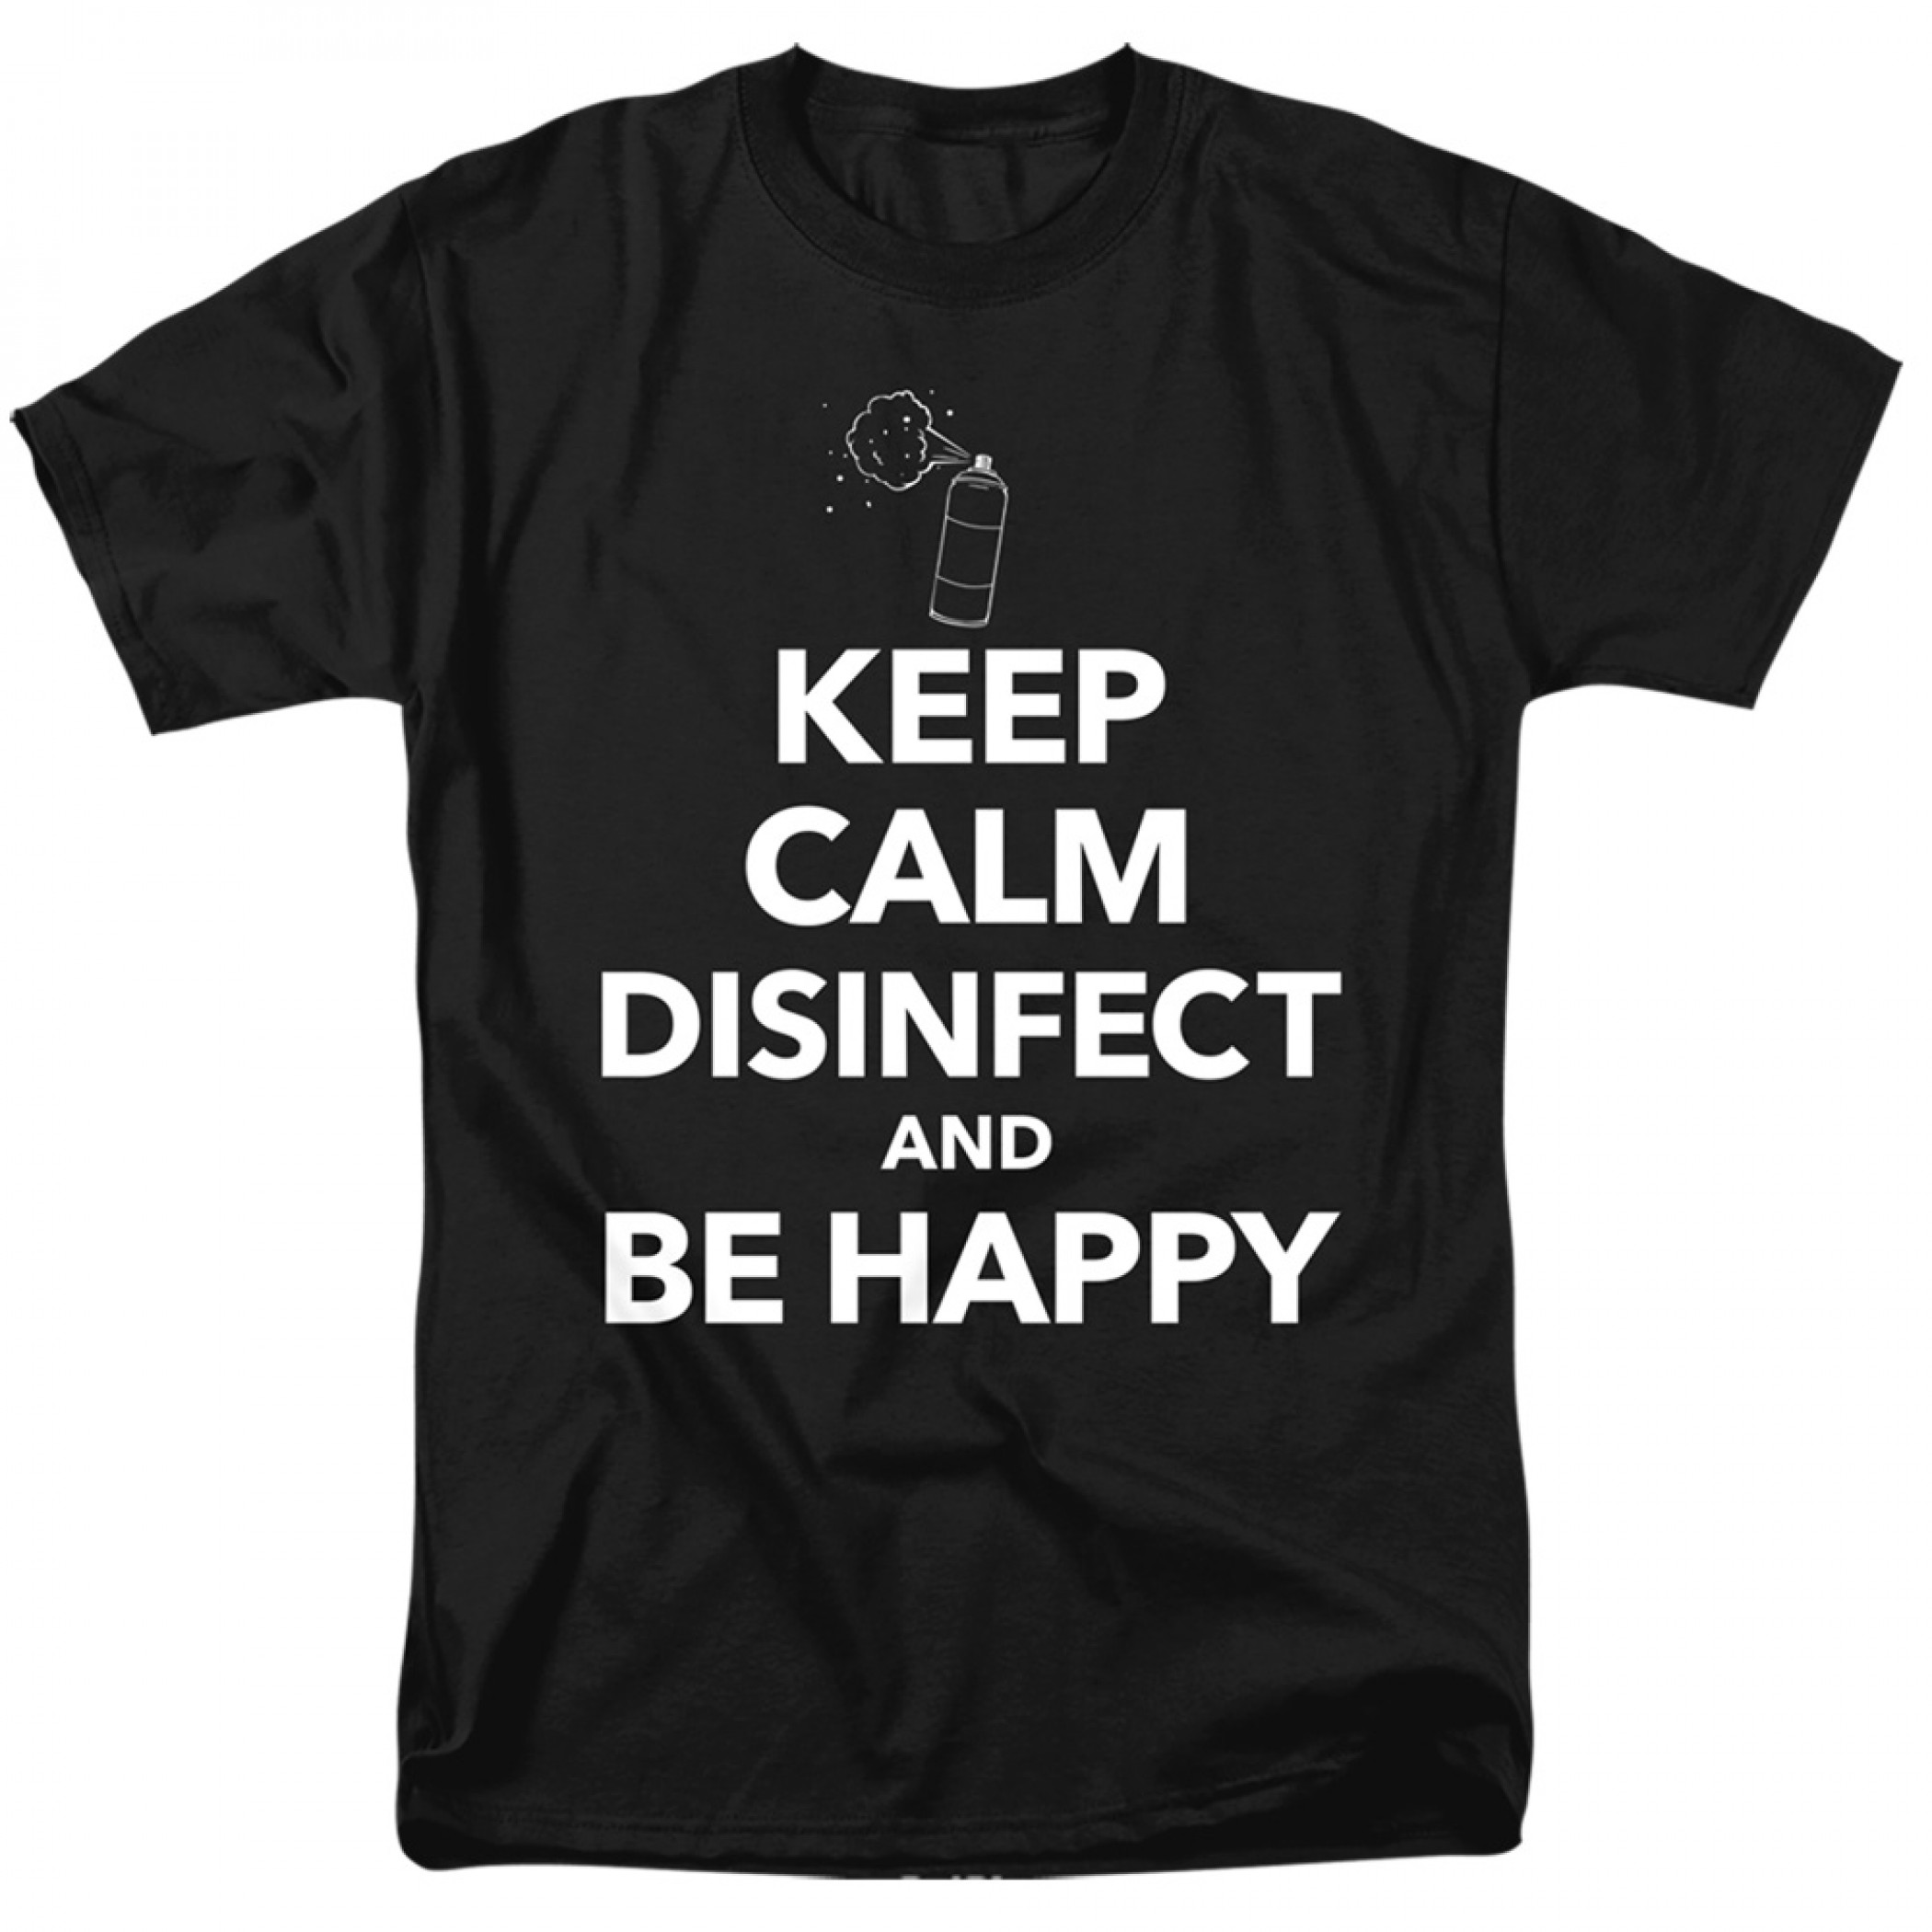 Keep Calm and Disinfect Social Distancing Men's T-Shirt